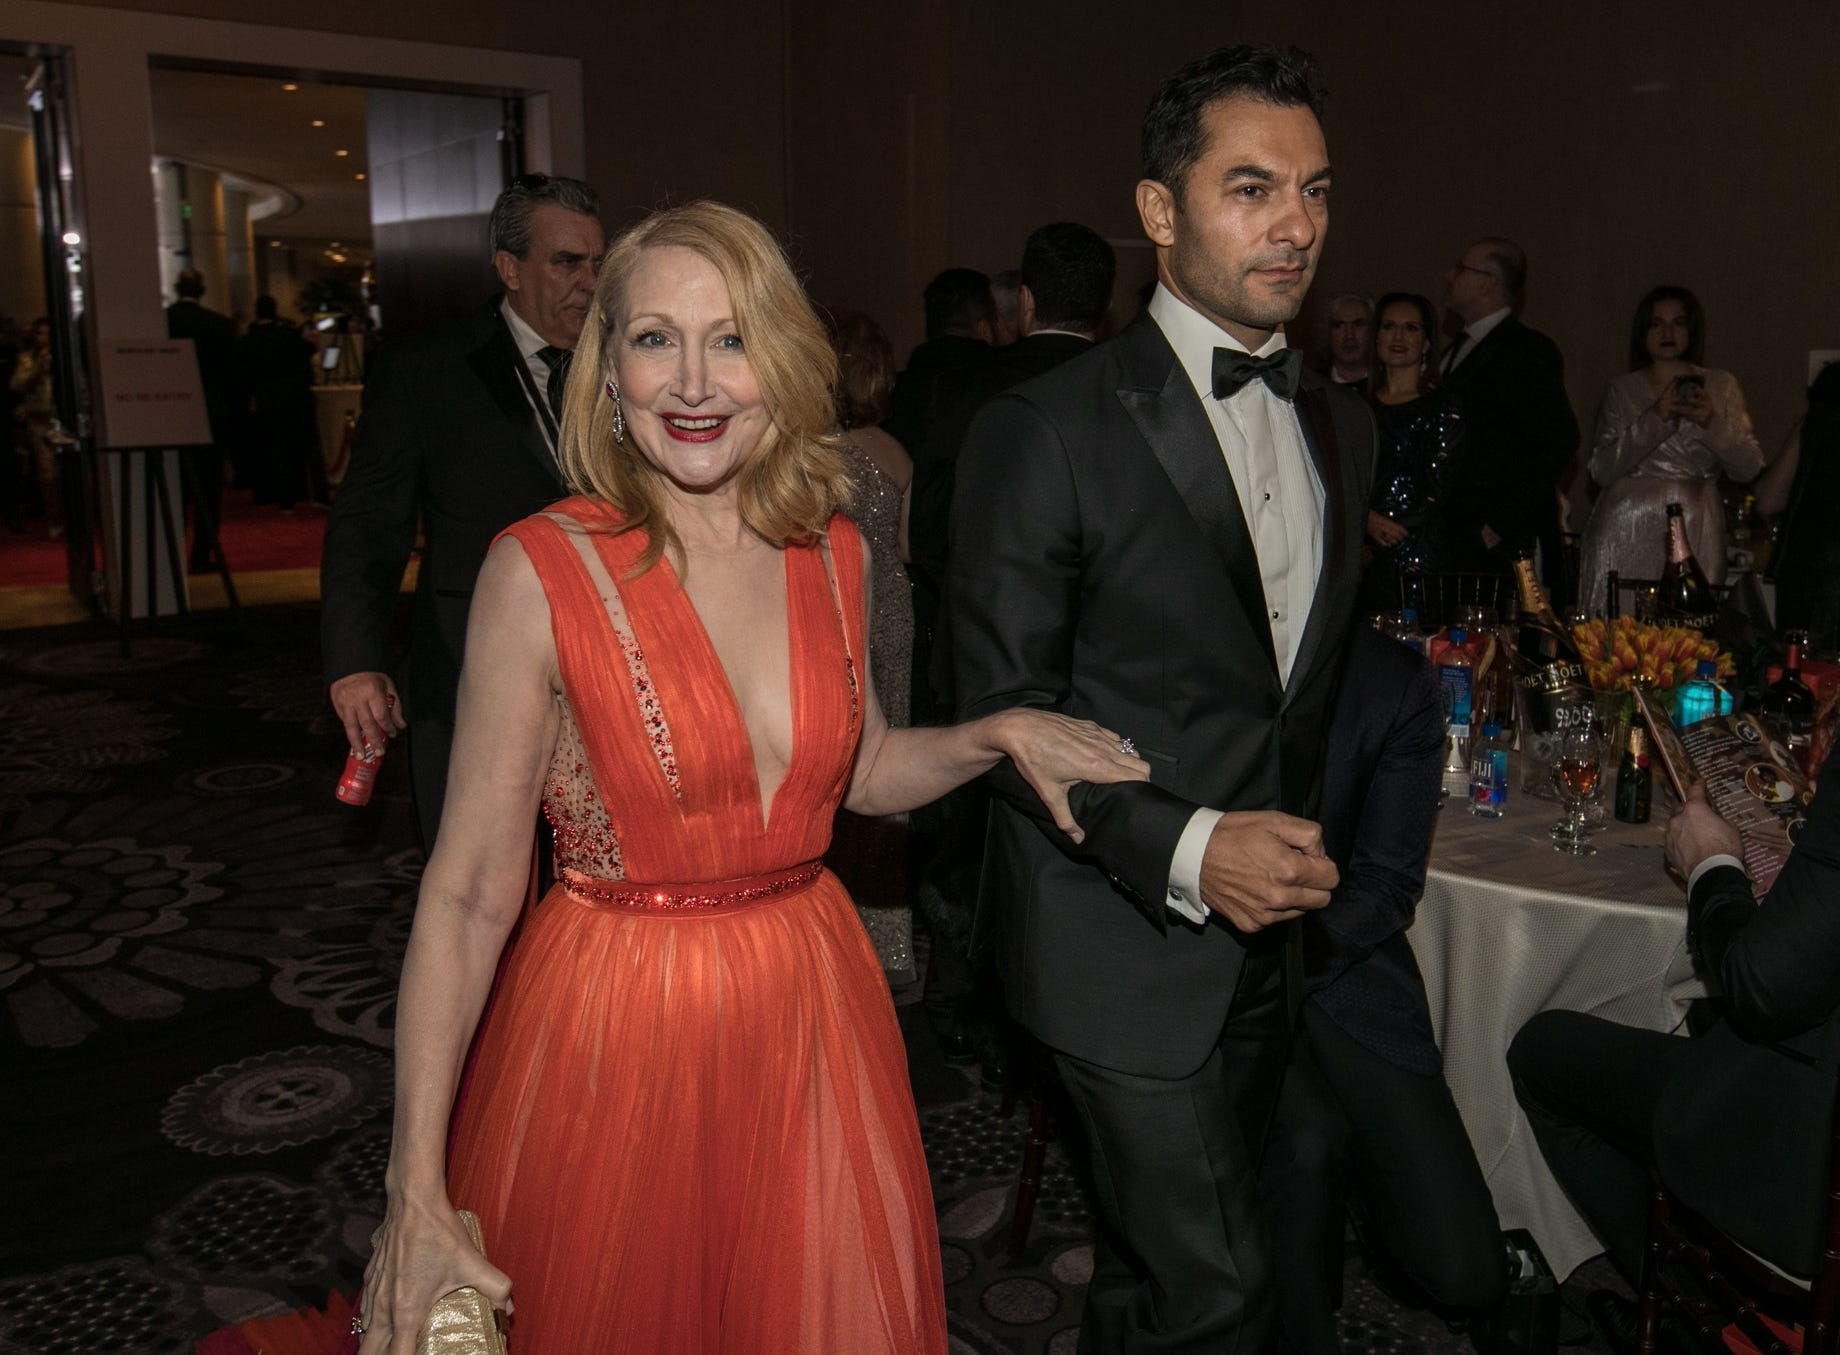 Patricia Clarkson is escorted inside the ballroom.